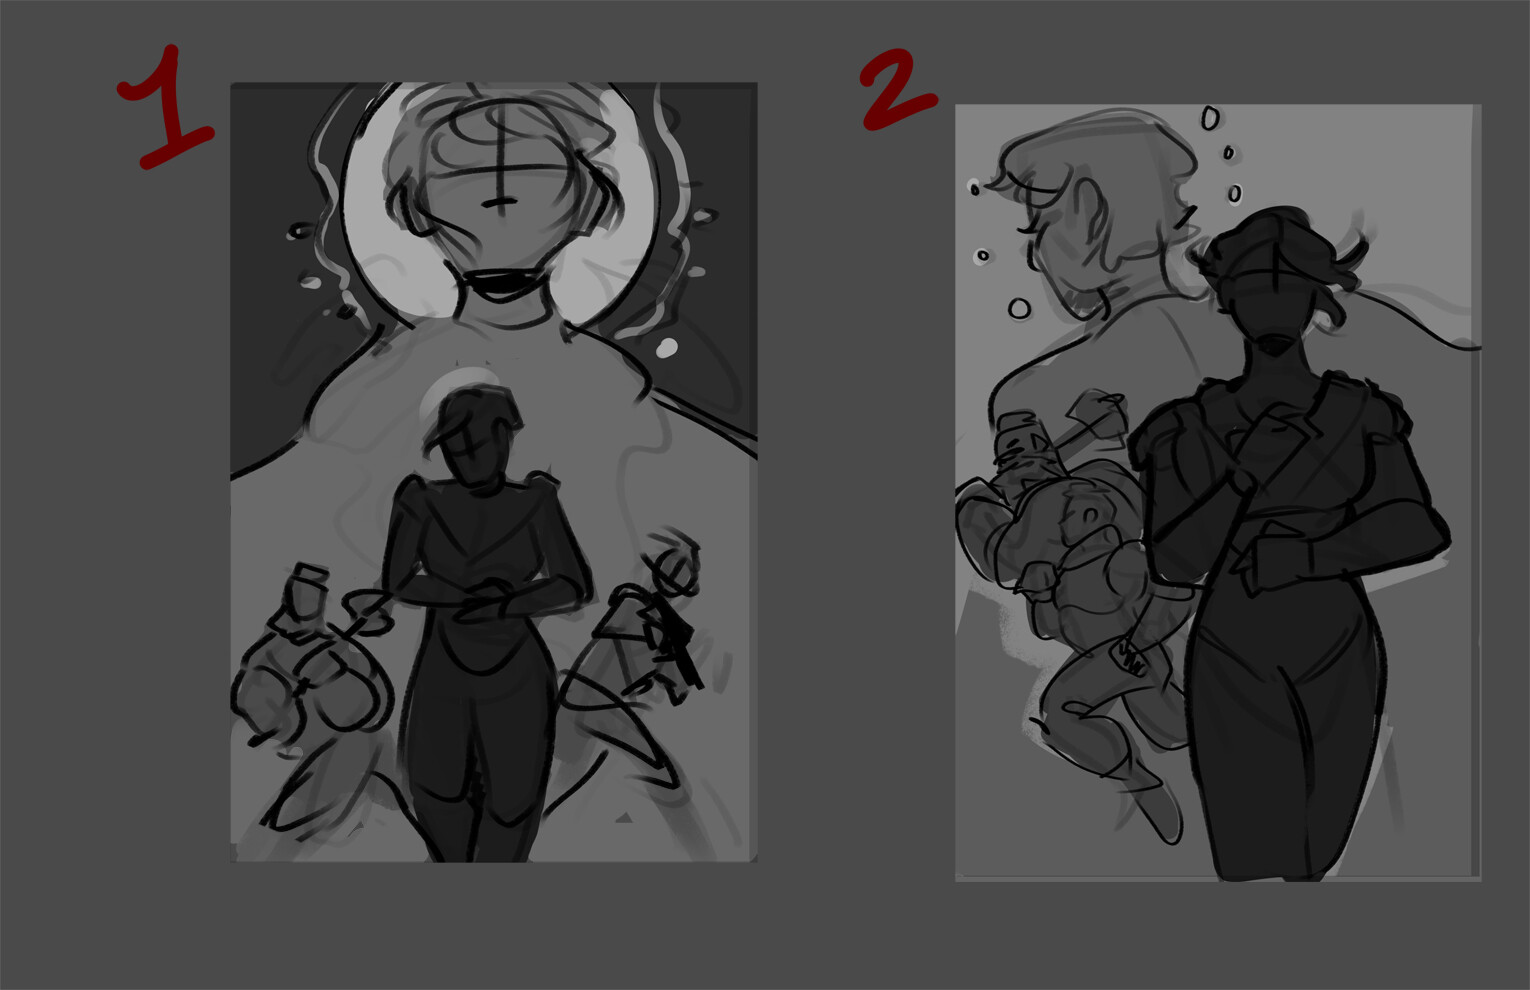 Thumbnail compositions